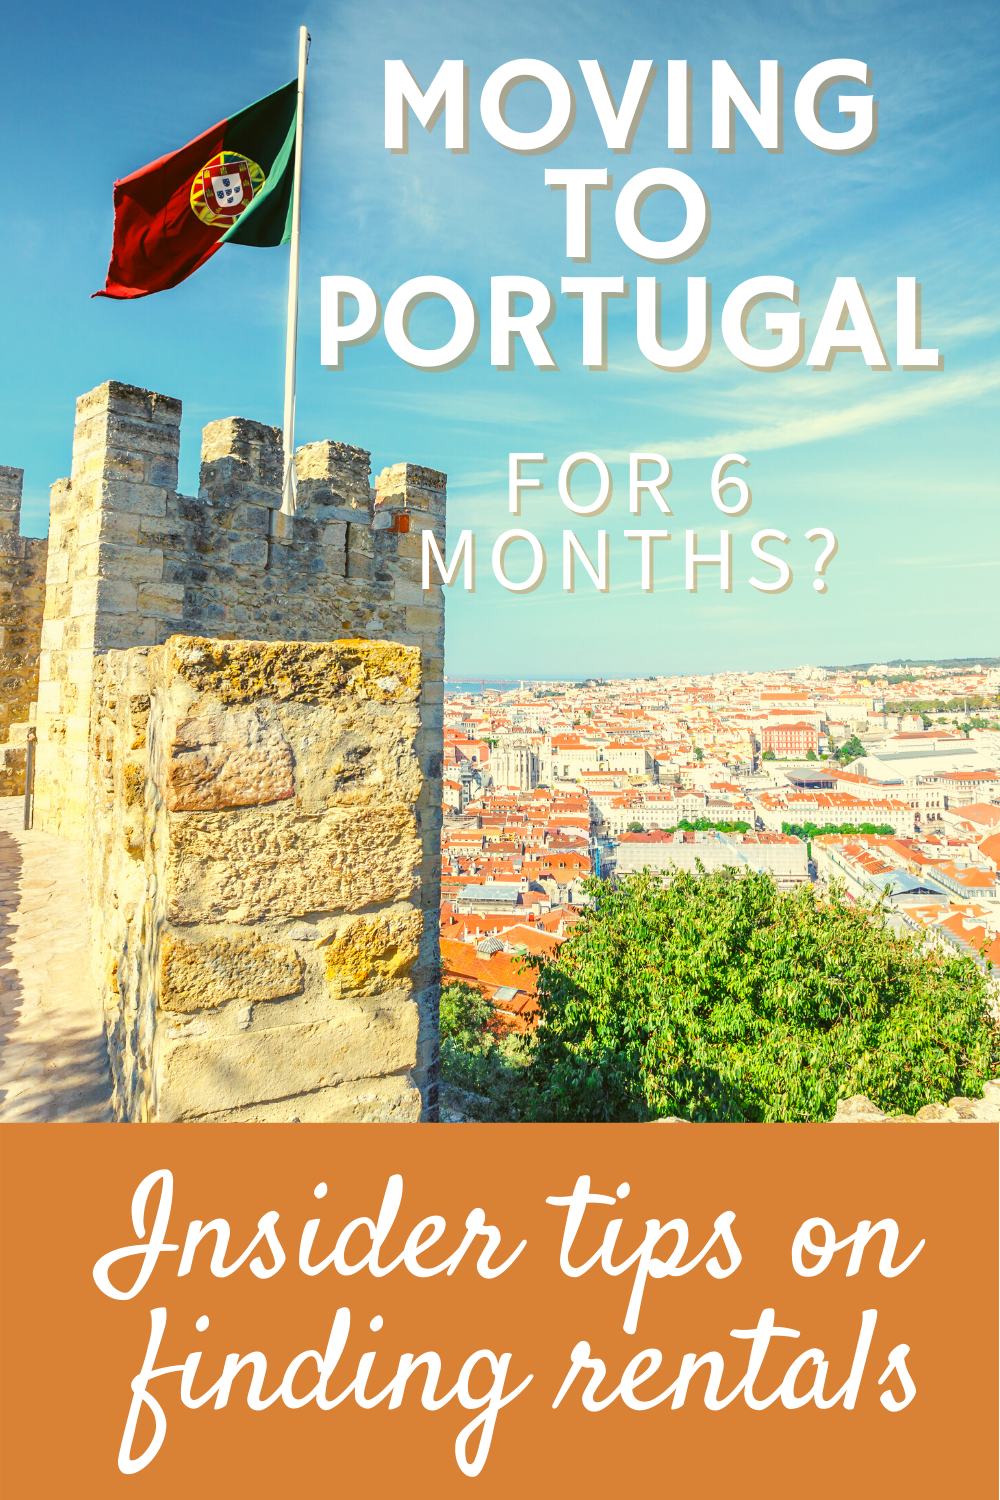 Moving to Portugal for 6 Months: Insider tips on f